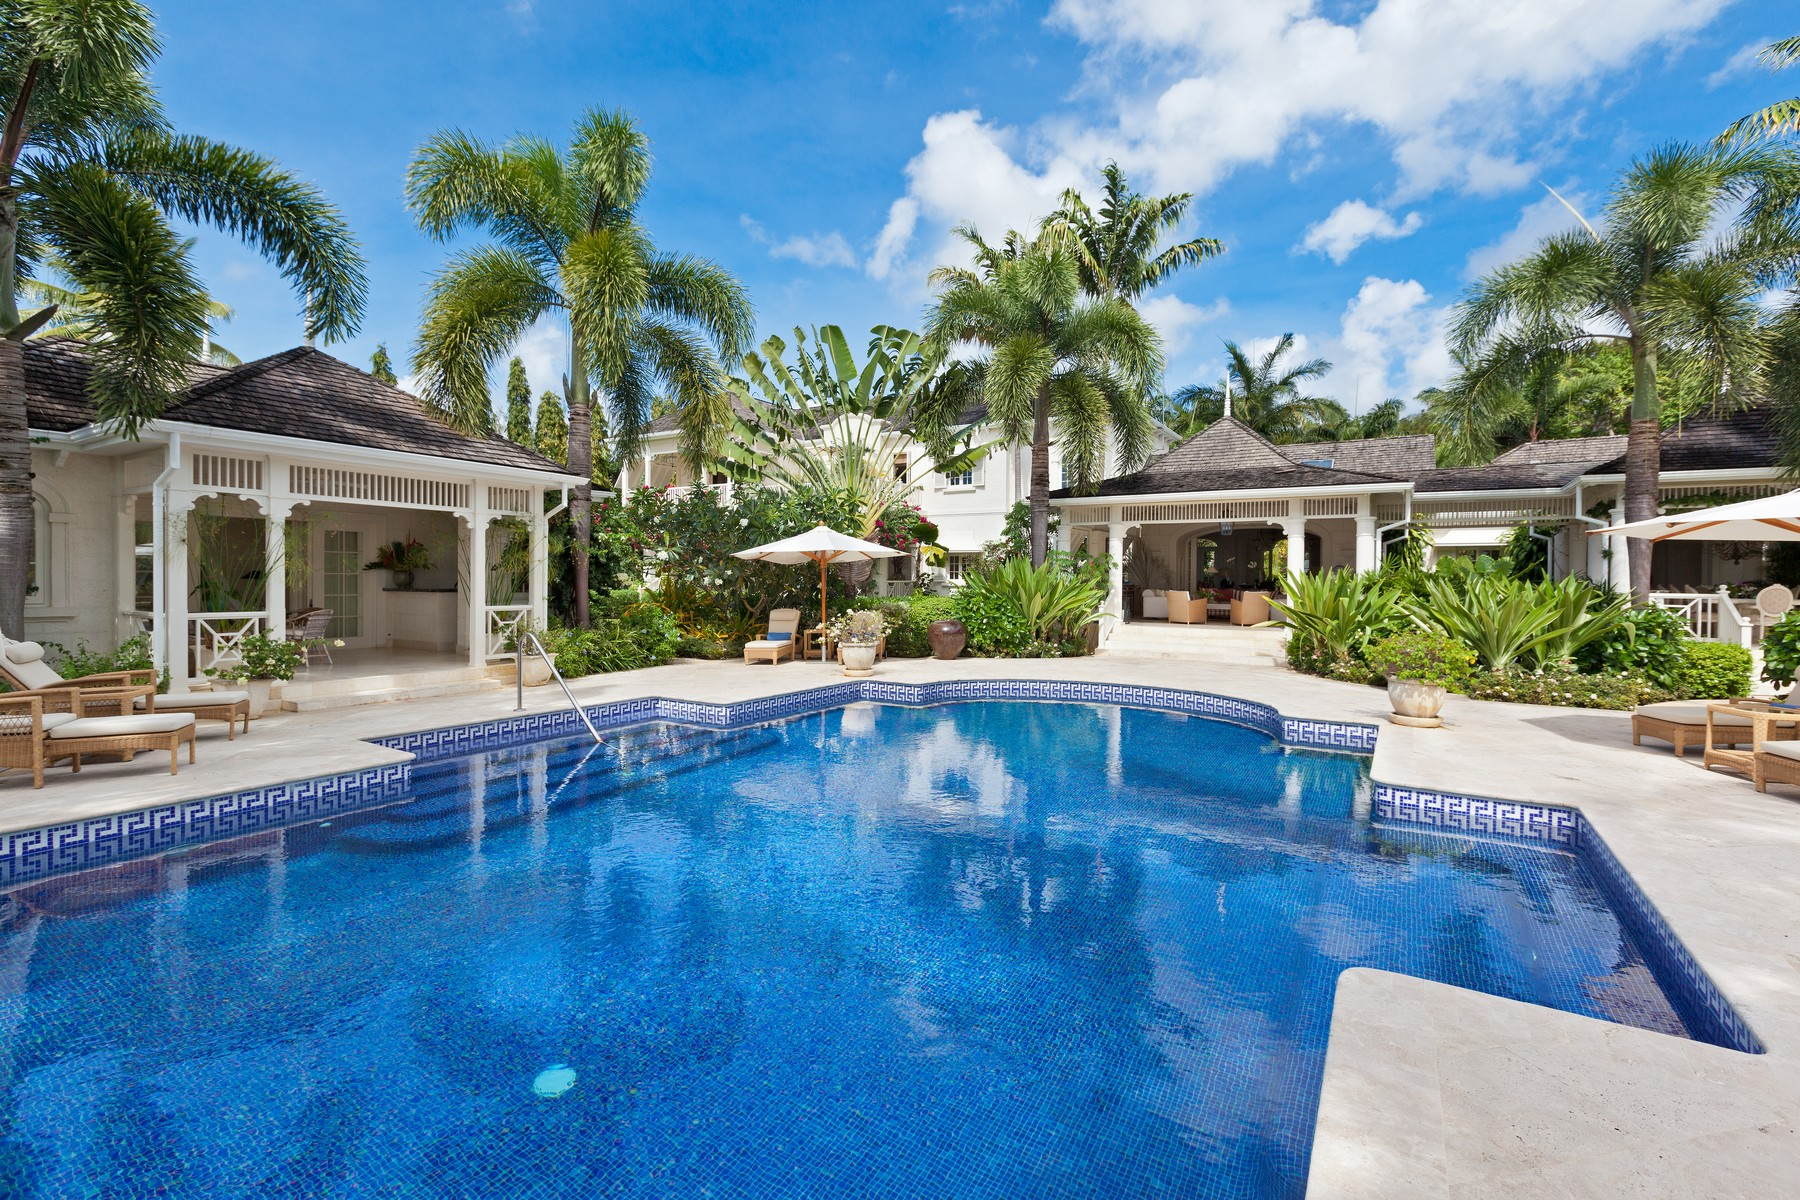 Other Residential for Sale at Coco de Mer Other Saint James, Saint James, Barbados